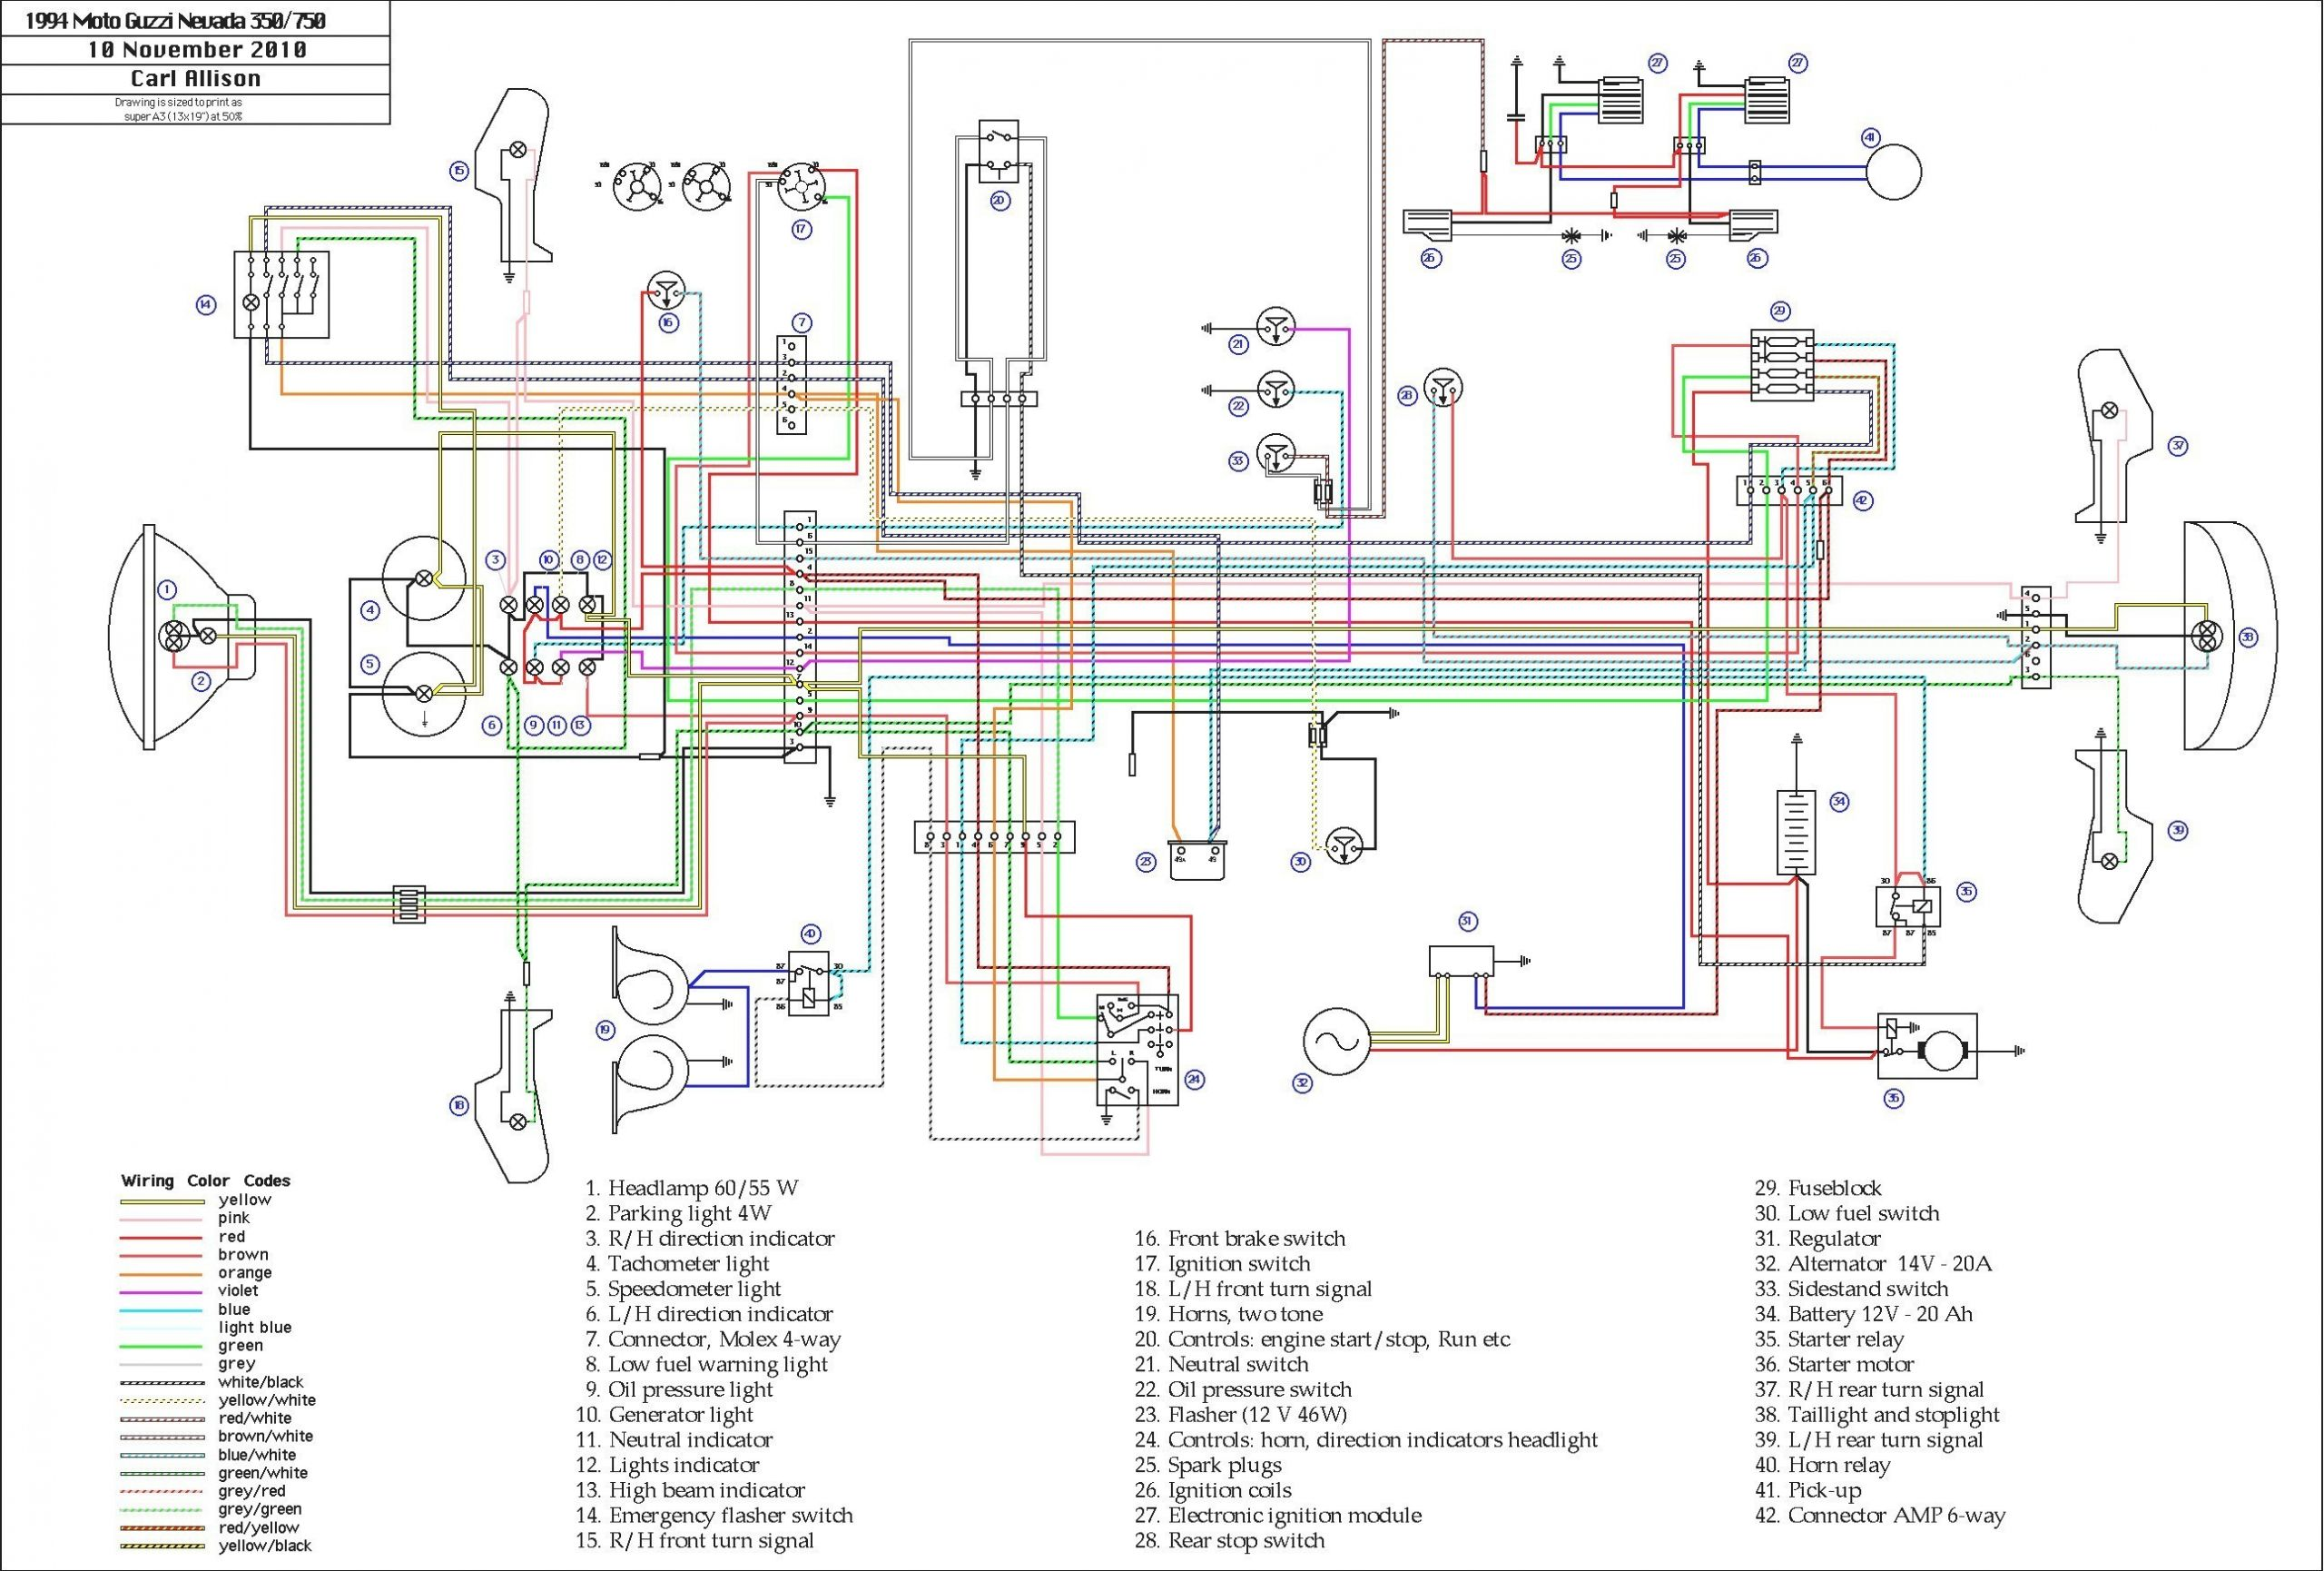 Wire Diaigram for 2011 2.5 Frontier 2011 Nissan Frontier Front Turn Signal Wiring Diagram Collection Wiring Diagram Sample Of Wire Diaigram for 2011 2.5 Frontier